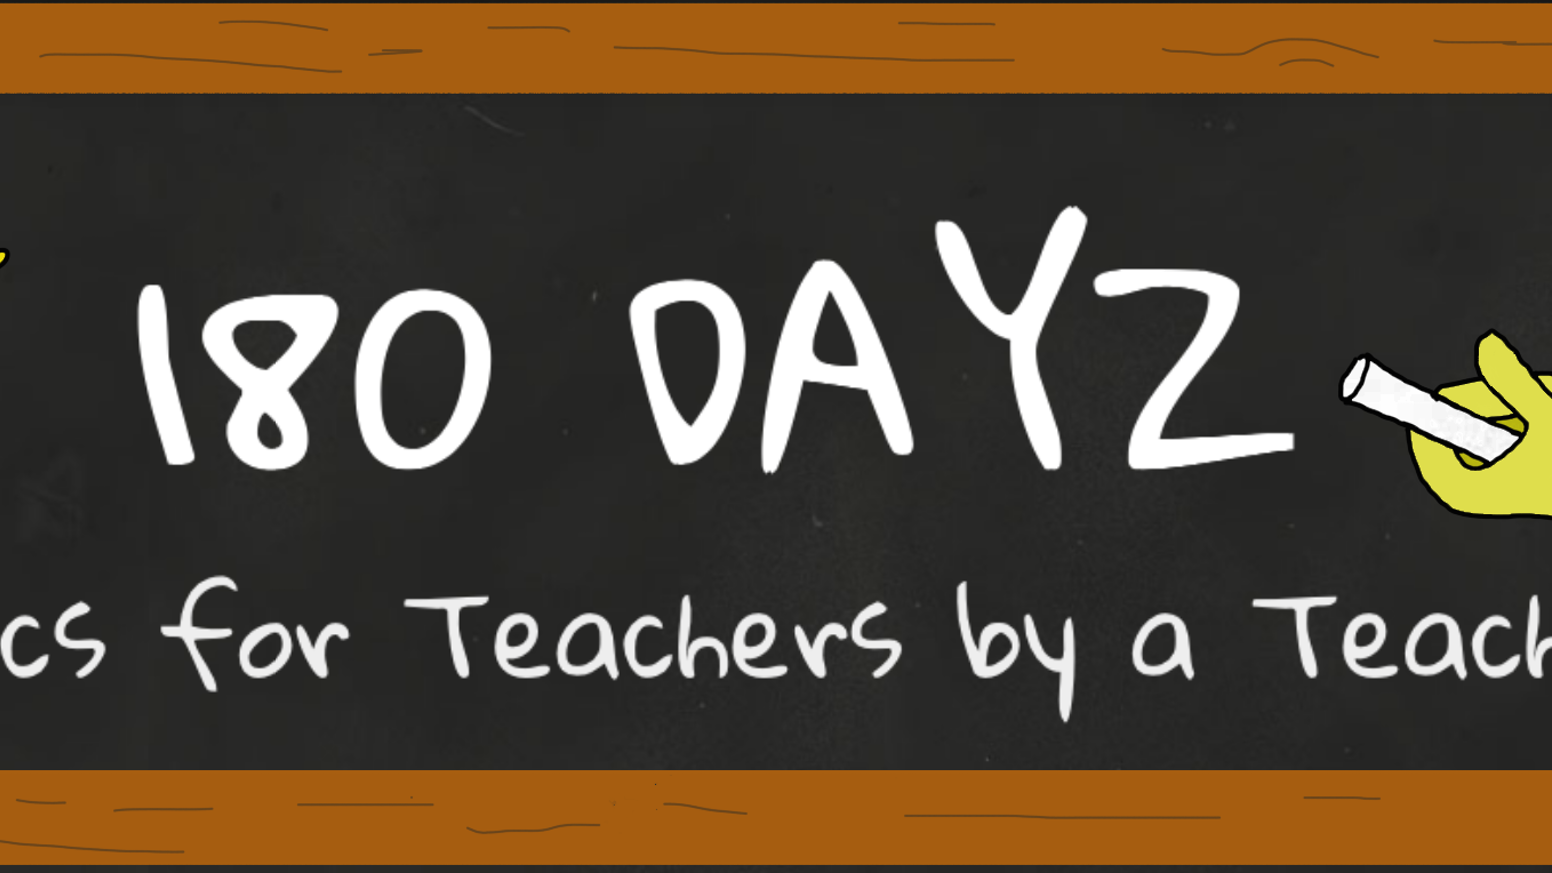 High quality wall calendar featuring a monthly themed 180Dayz teacher comic that will keep you laughing through the school year